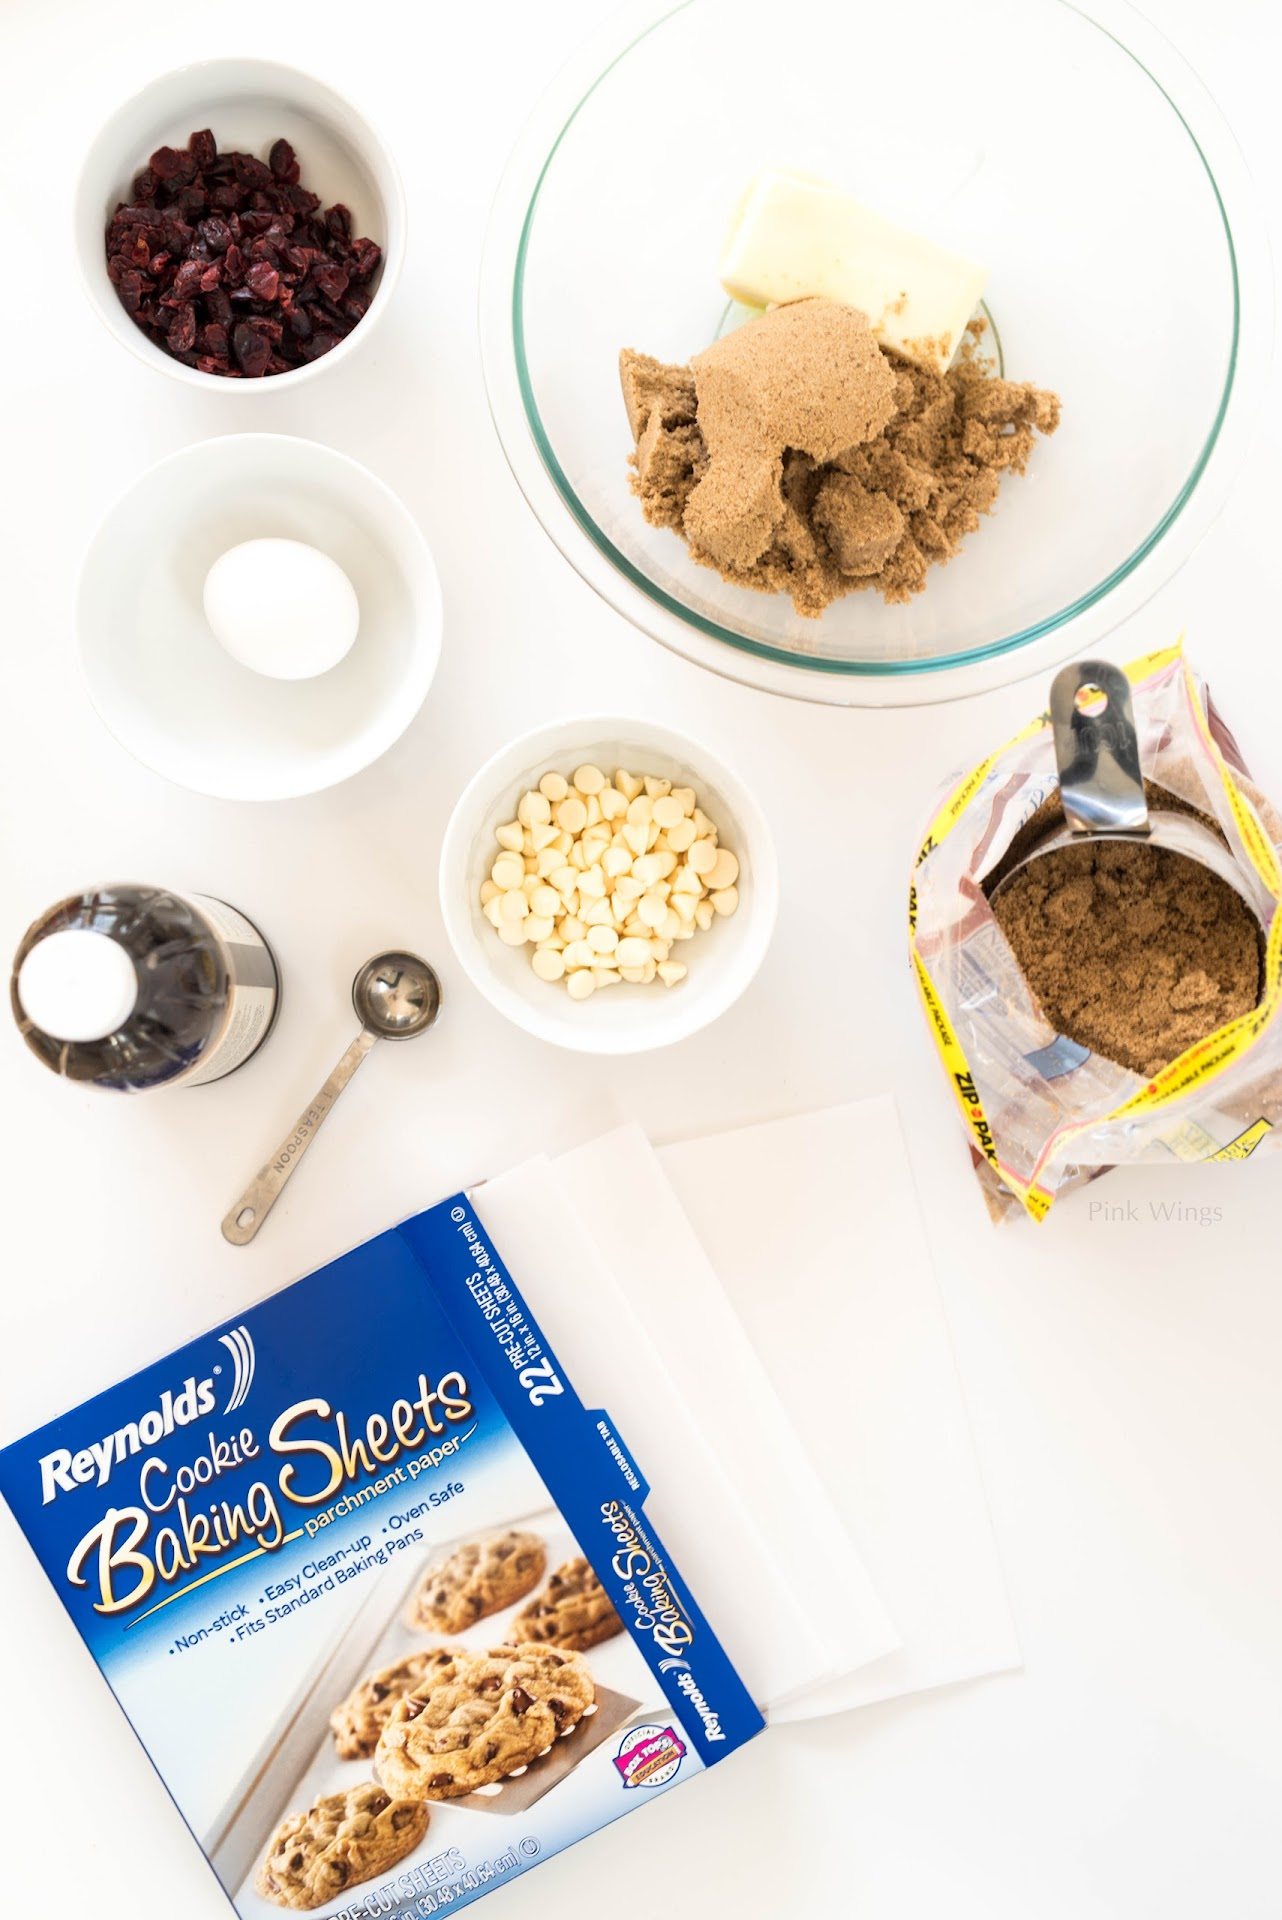 cookie exchange recipes, holiday cookies, easy christmas cookies, craisins, dried cranberries, cranberry desserts, brown sugar cookies, reynolds cookie baking sheets, how to spend less time in the kitchen, white chocolate, cookie gift box, cookies gifts, california food blogger, san francisco bay area, mormon lds, ingredients photography, minimalism, minimalistic photographer, white background,